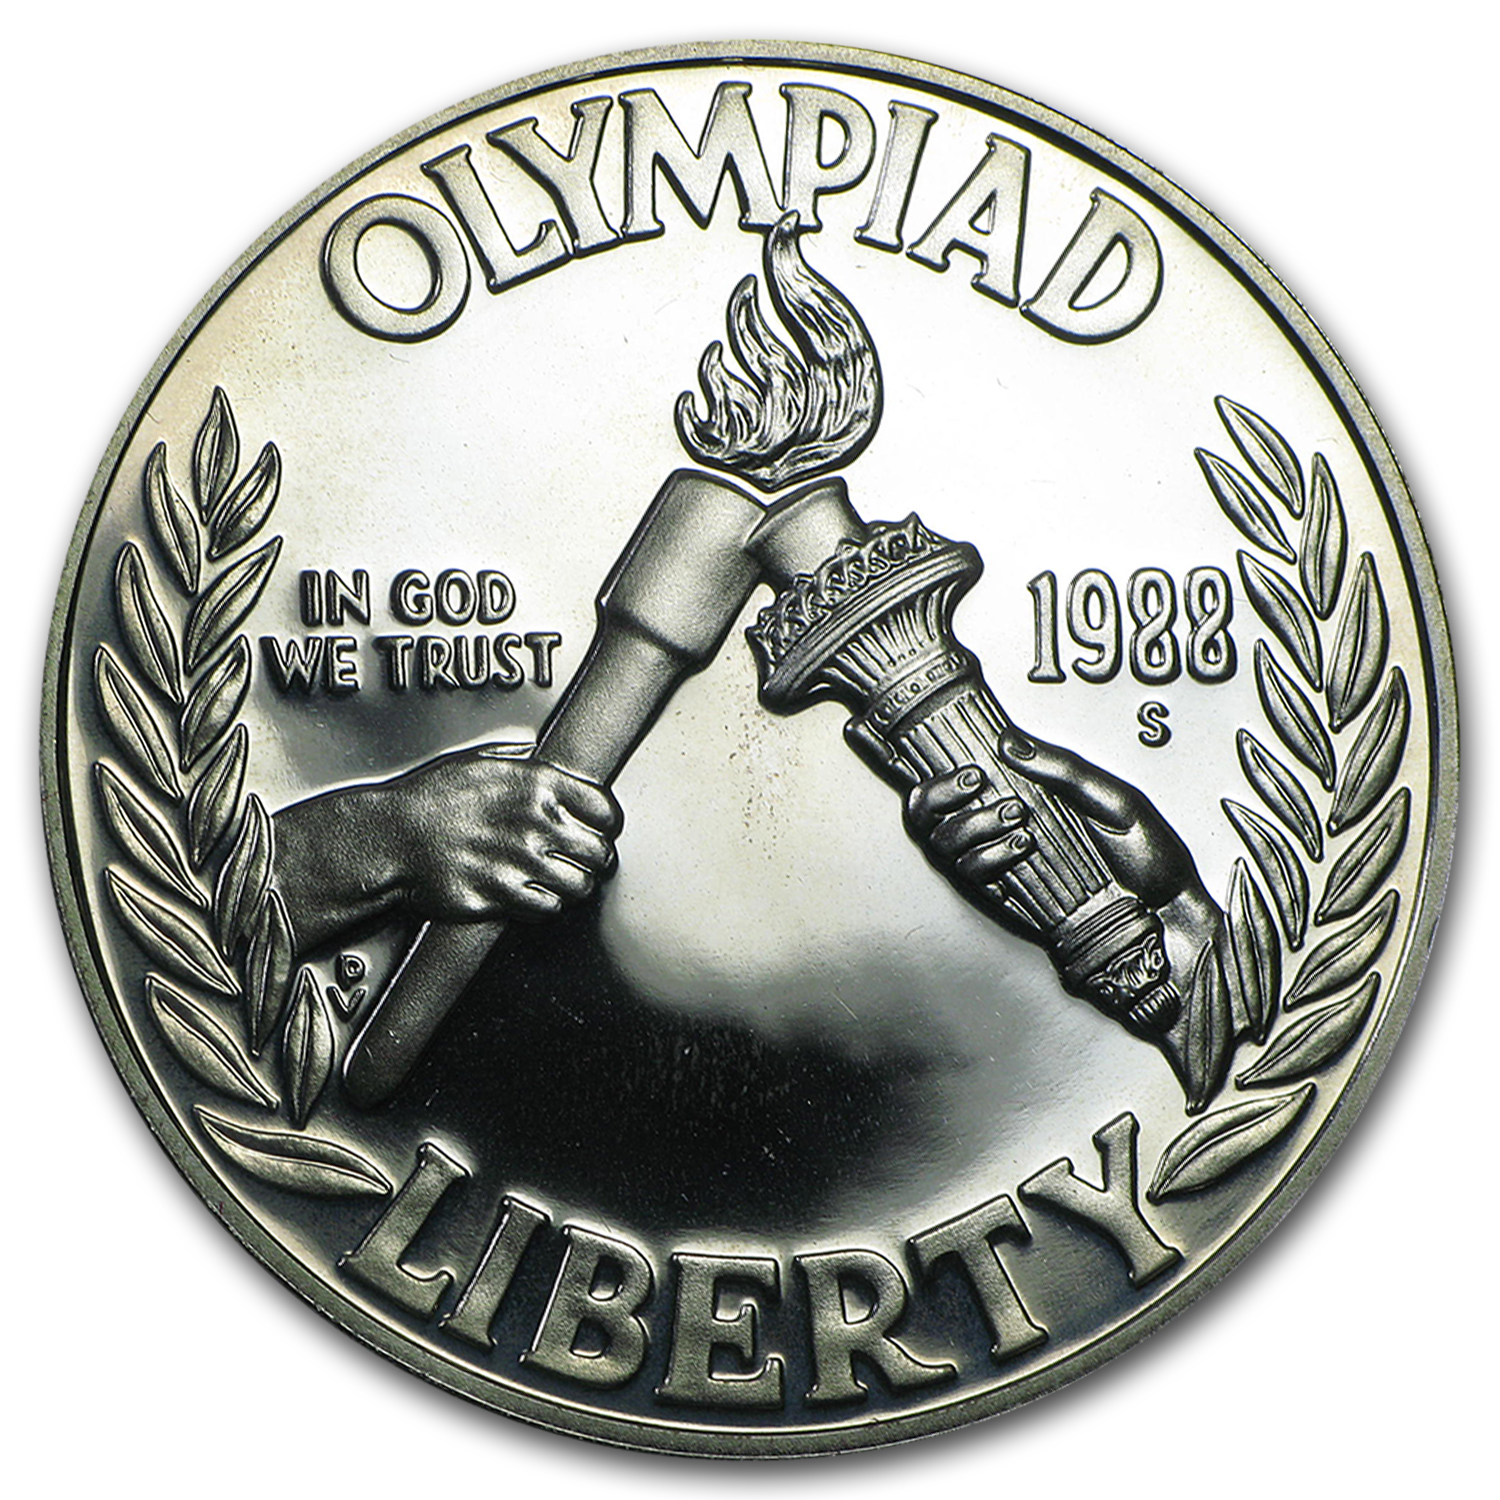 1988-S Olympic $1 Silver Commem Proof (Capsule Only)